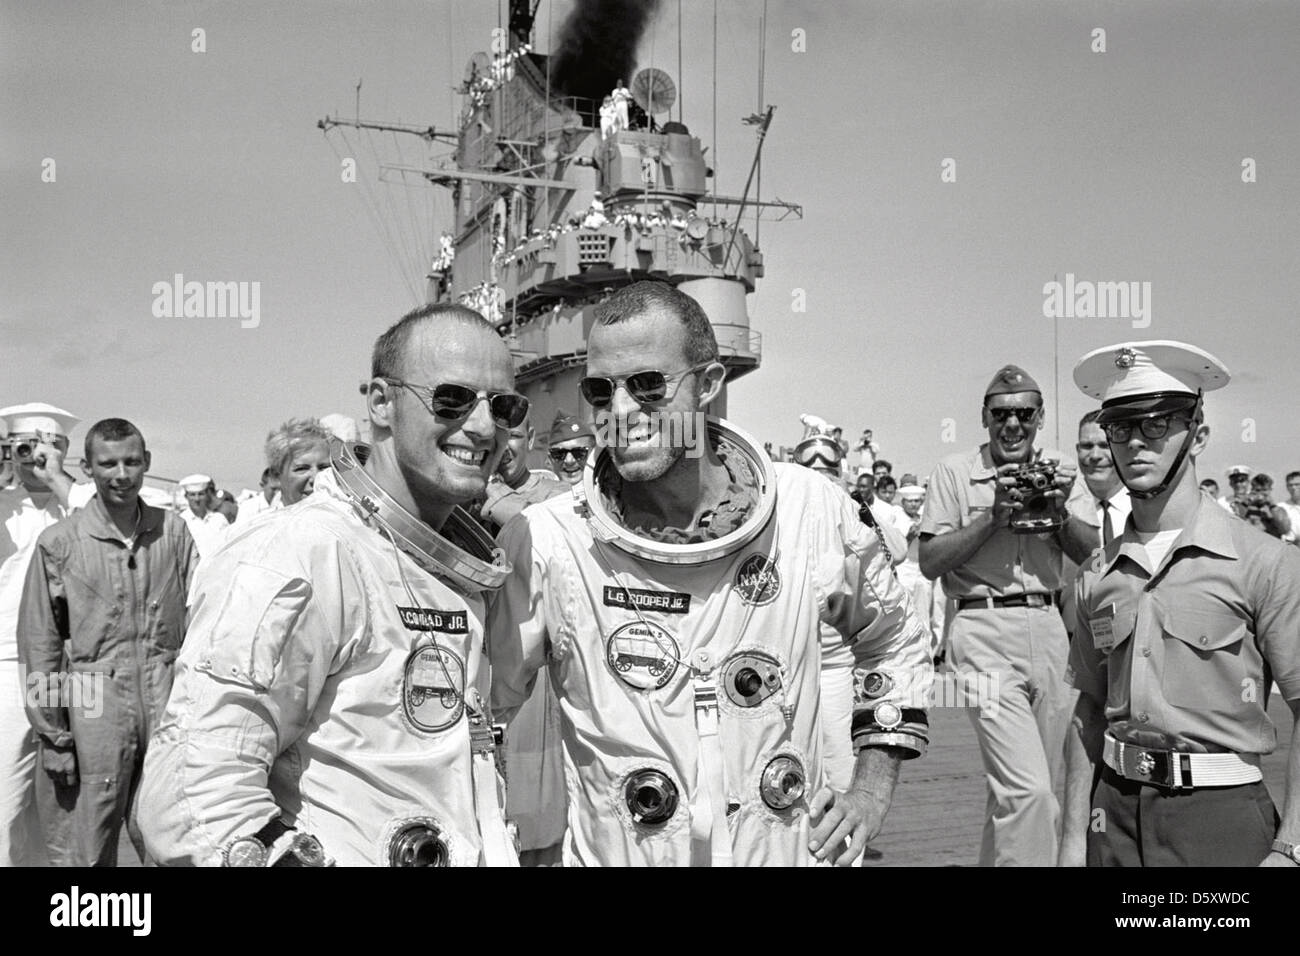 U.S. astronauts L. Gordon Cooper Jr. (right) and Charles Conrad Jr. walk across the deck of the recovery aircraft Stock Photo